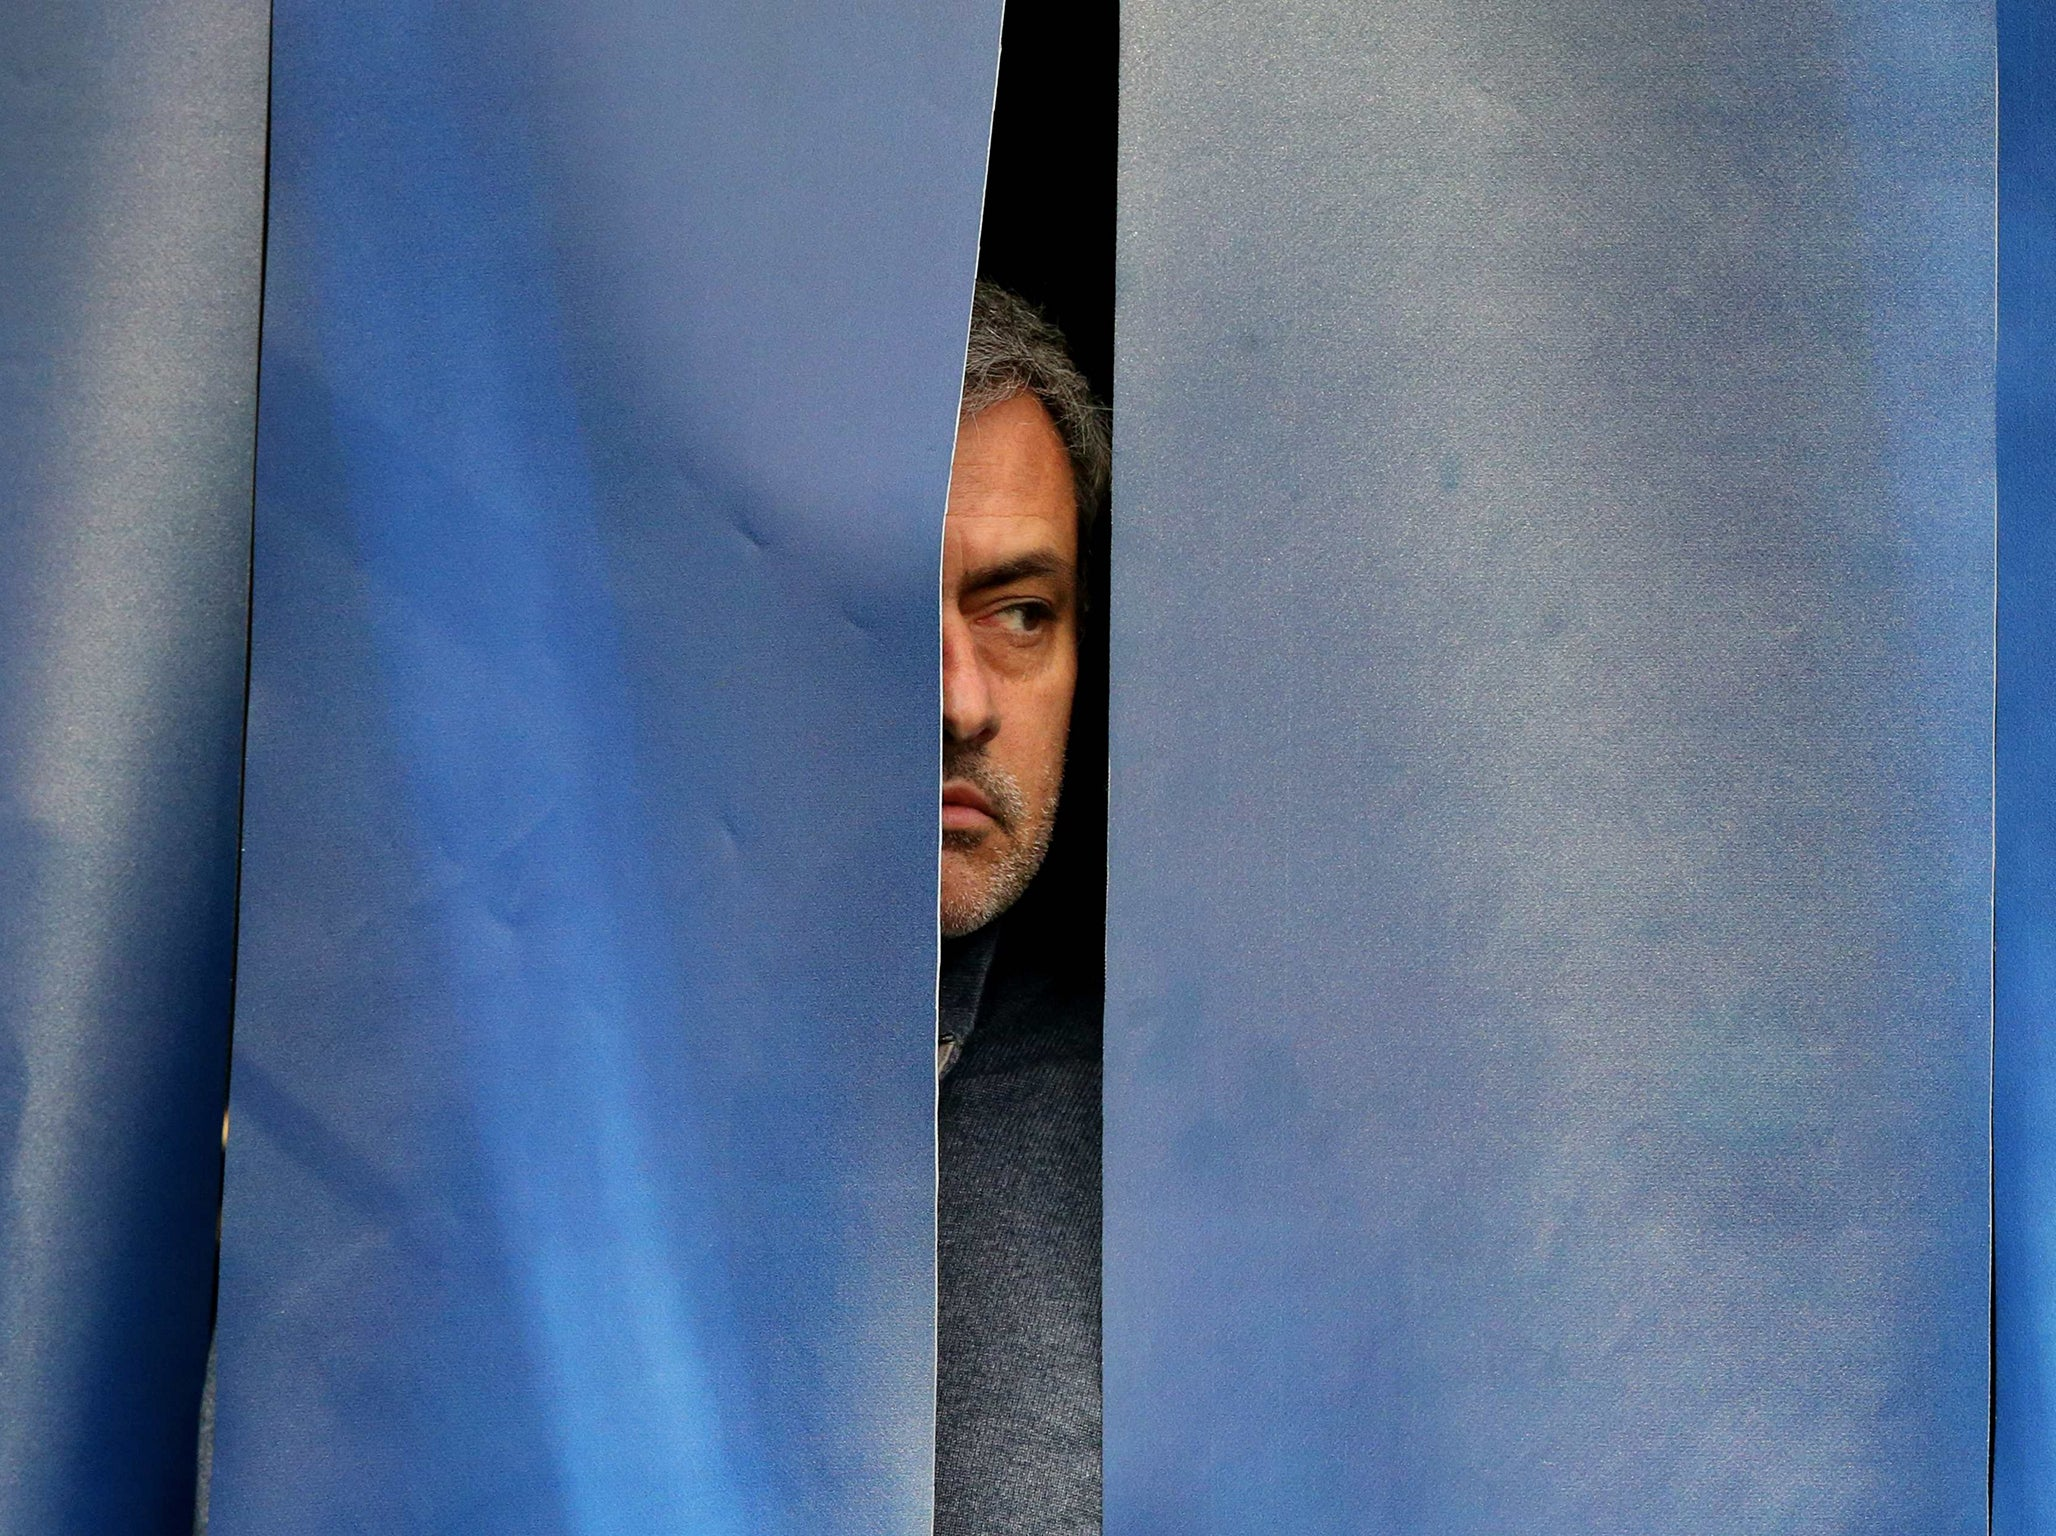 Jose Mourinho to work for Russian broadcaster RT as a pundit during this summer's World Cup